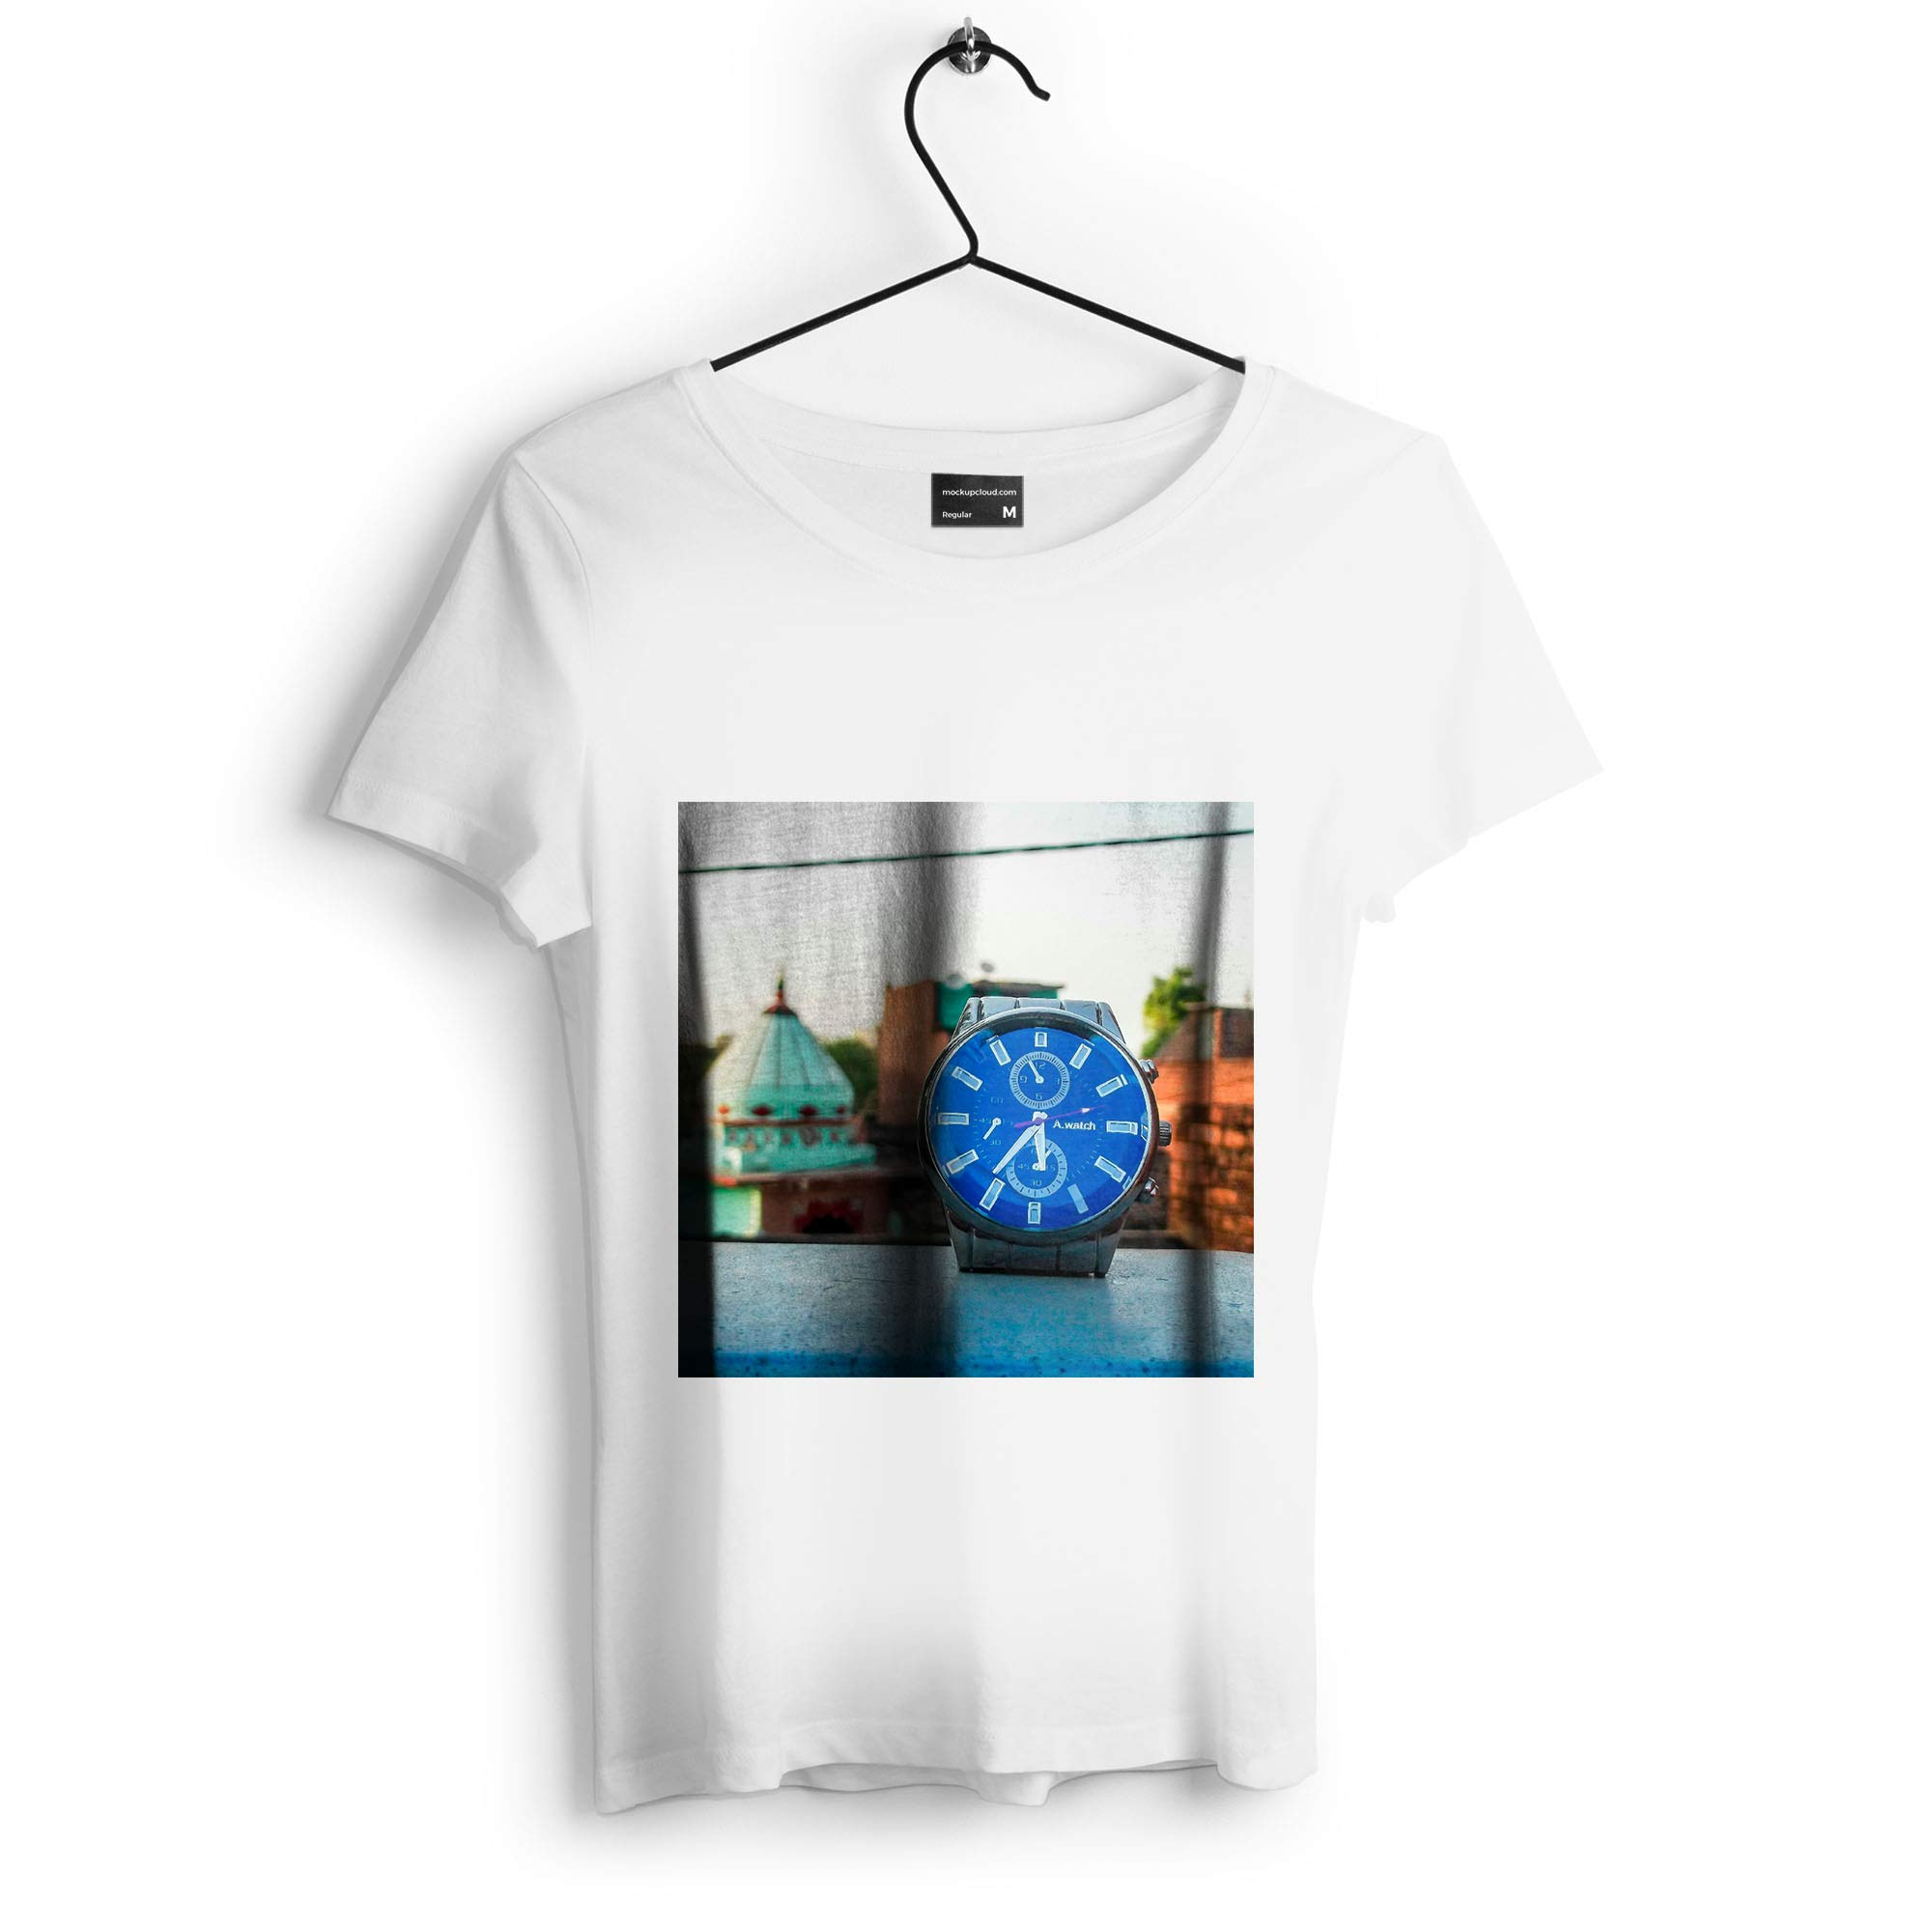 Westlake Art - Watch Analog - Unisex Tshirt - Picture Photography Artwork Shirt - White Adult Medium (D41D8) by Westlake Art